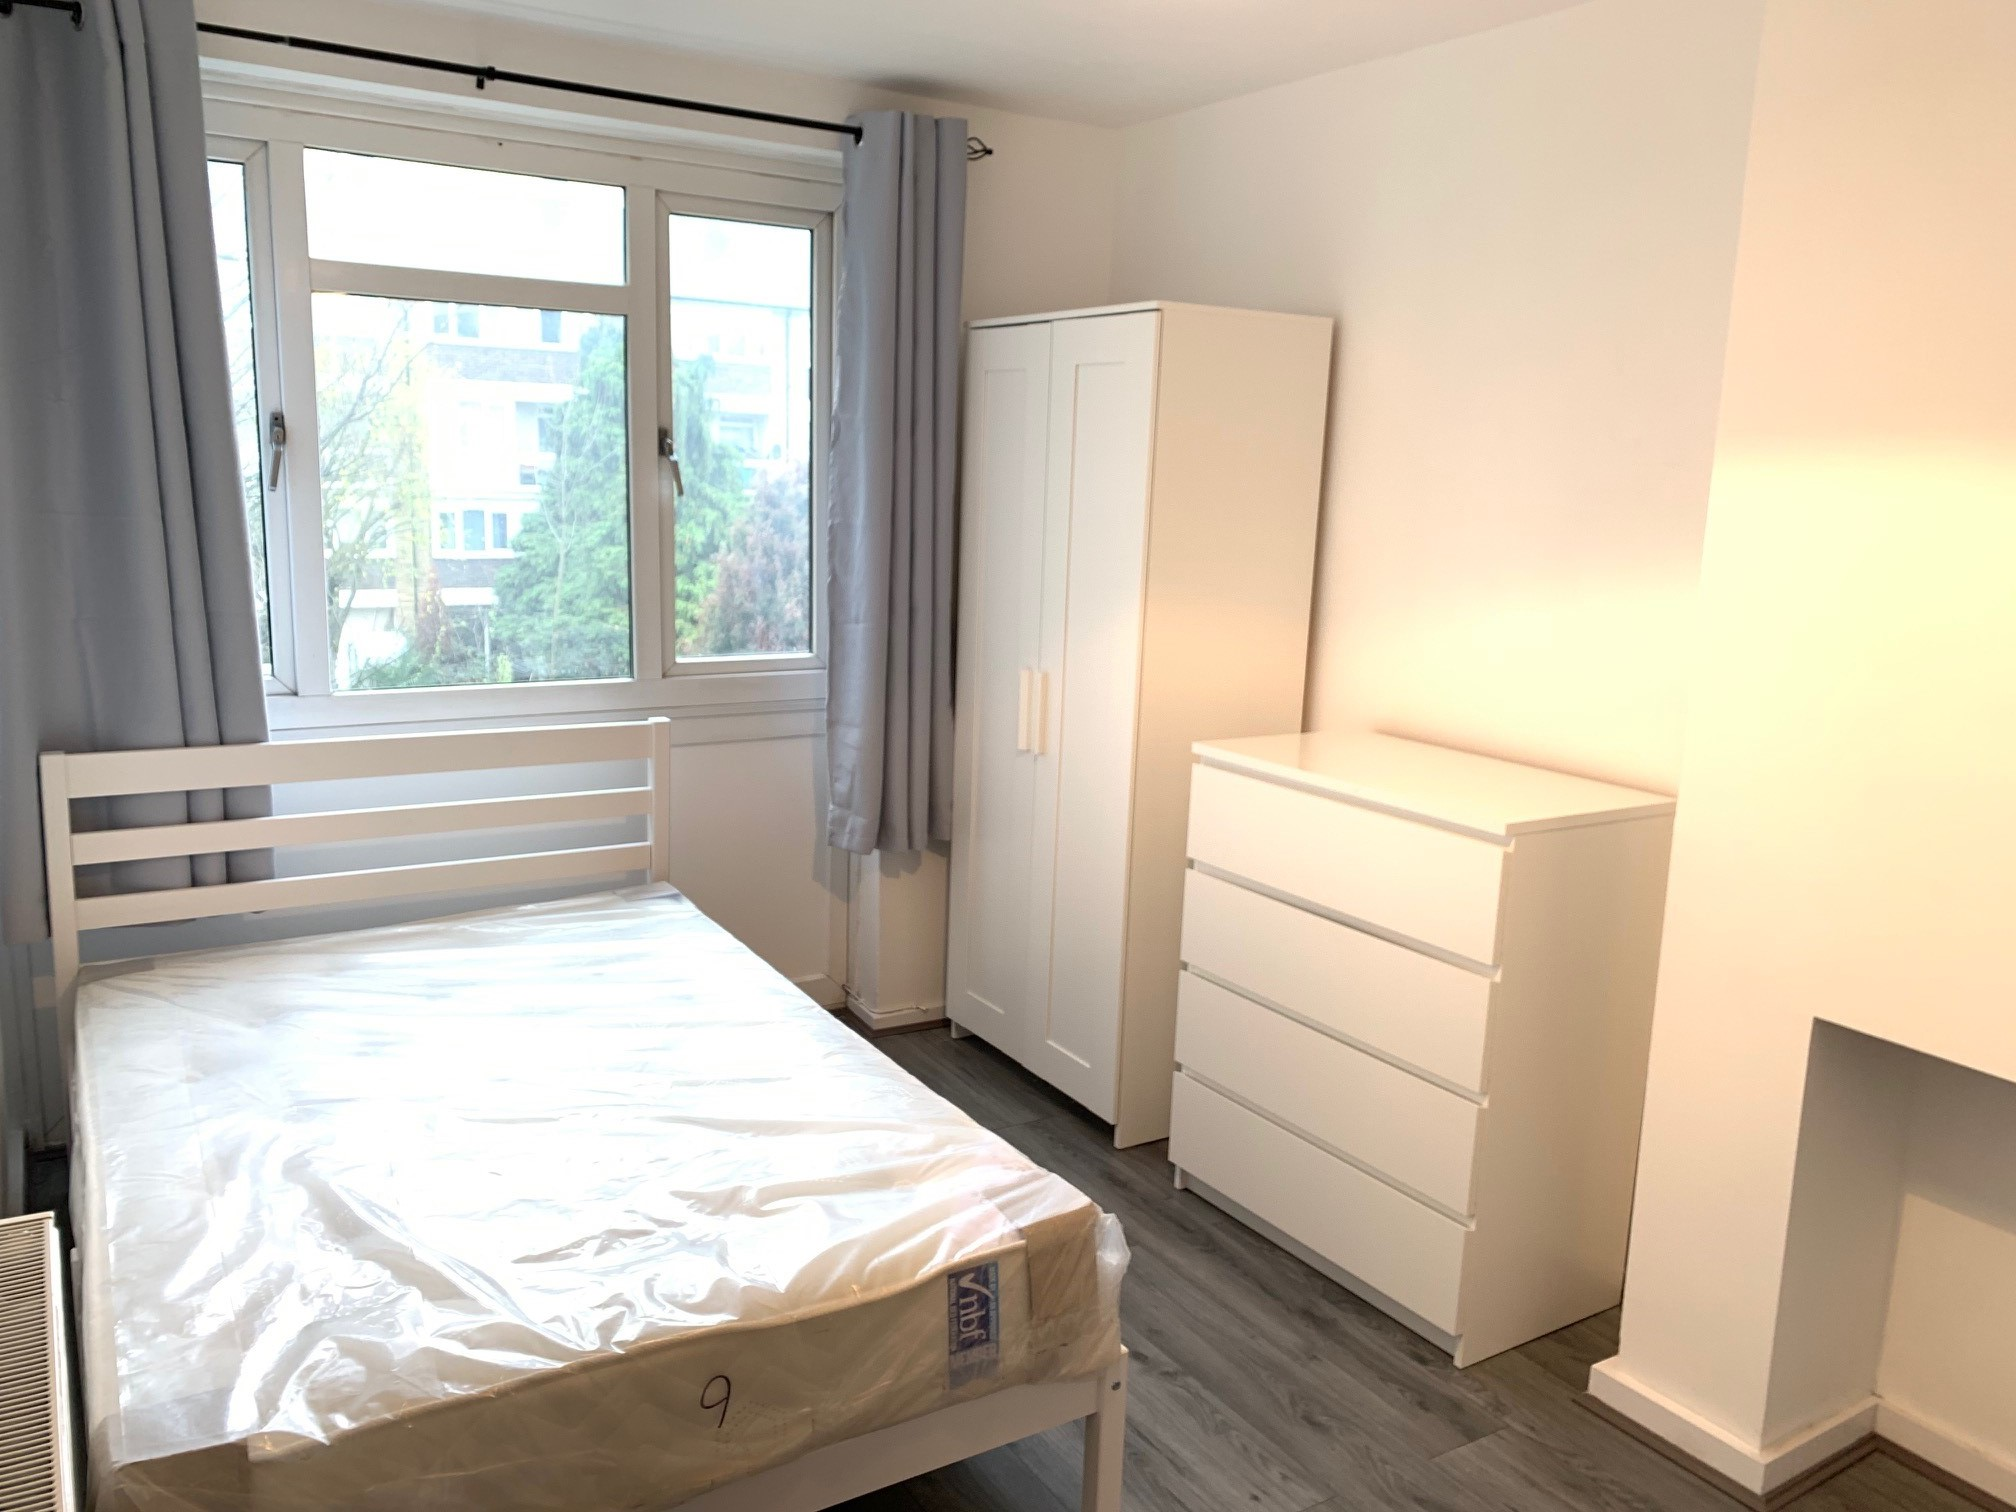 Rooms: Double Room For Rent London Flatshare